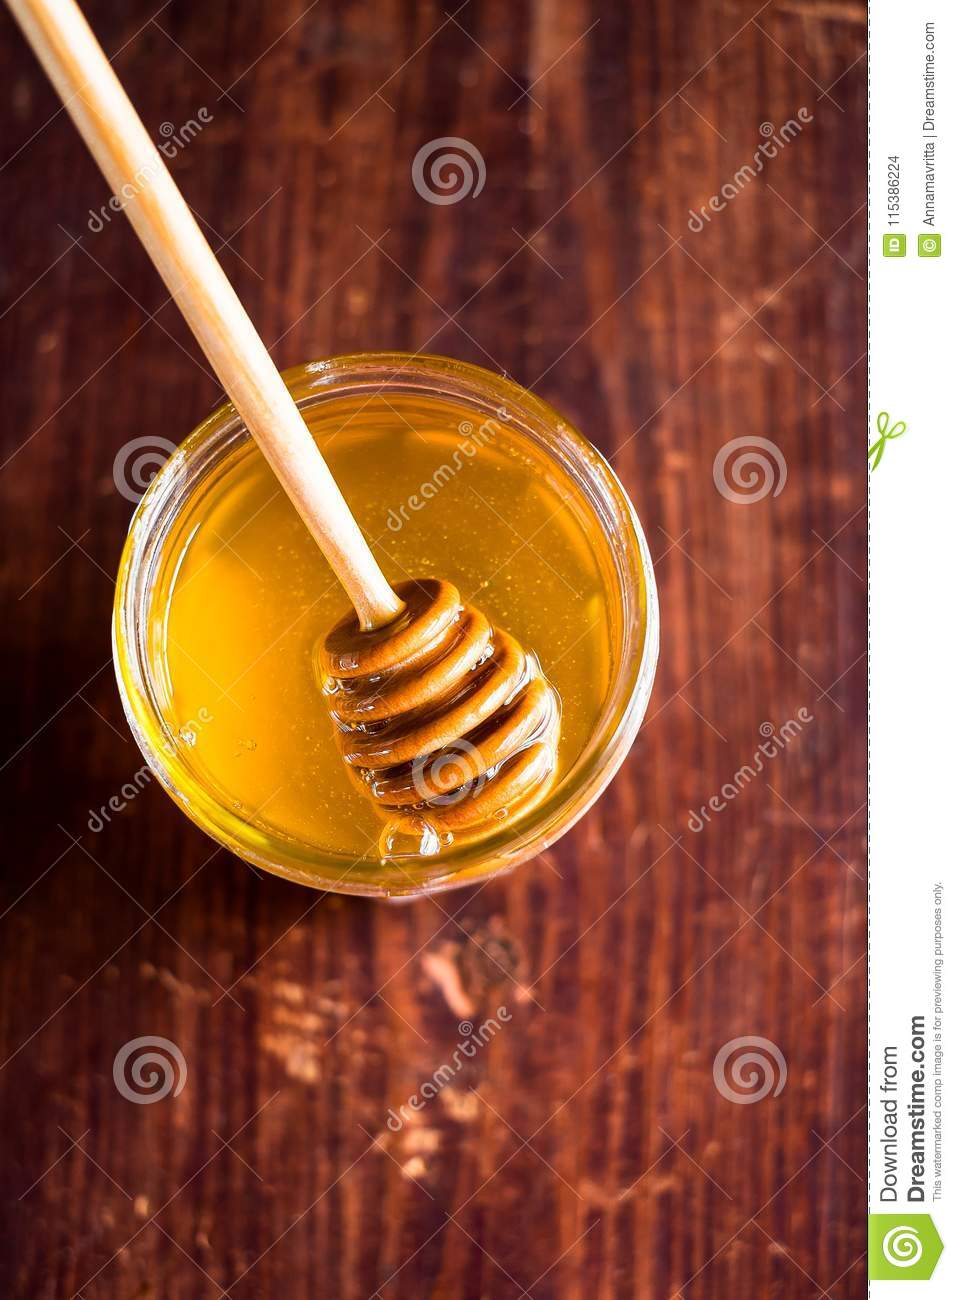 Aromatic honey with wooden honey dipper in a jar on a wooden table, selective focus, closeup. Healthy and organic food option. Ima